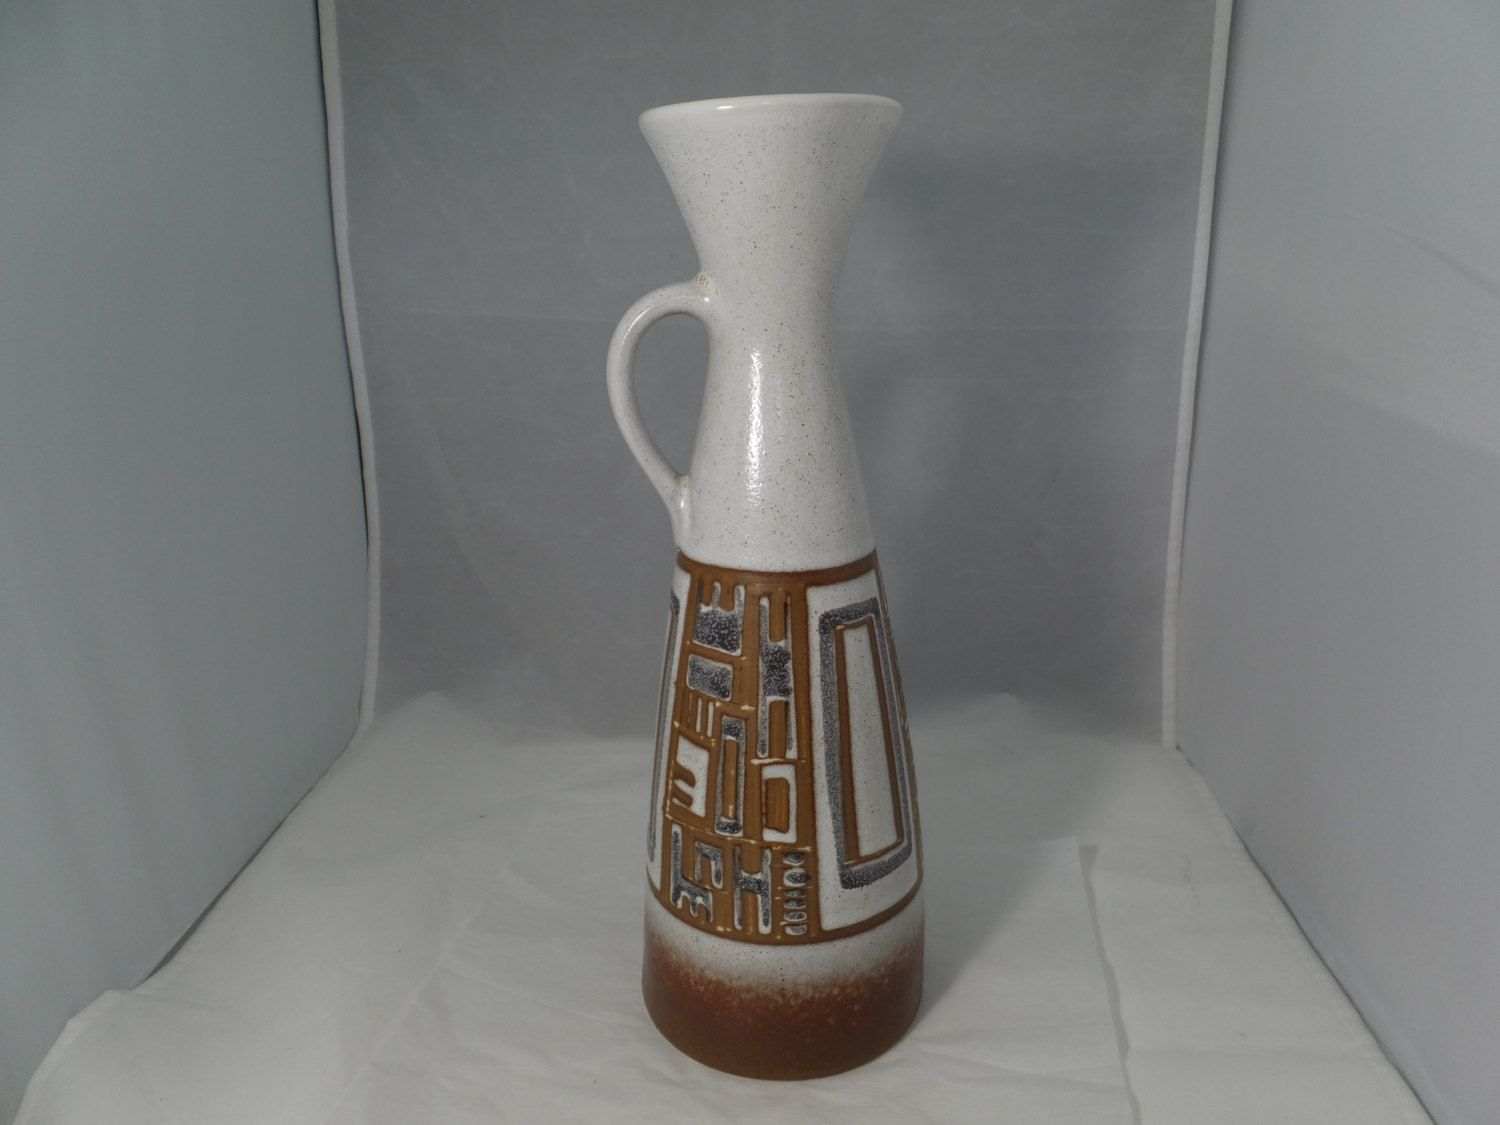 Vintage Lapid Art Pottery - 1960s Mid Century Pottery Pitcher, Israel Pottery, Retro Pottery Ewer, Signed Collectible, Original Label by Duckwells on Etsy